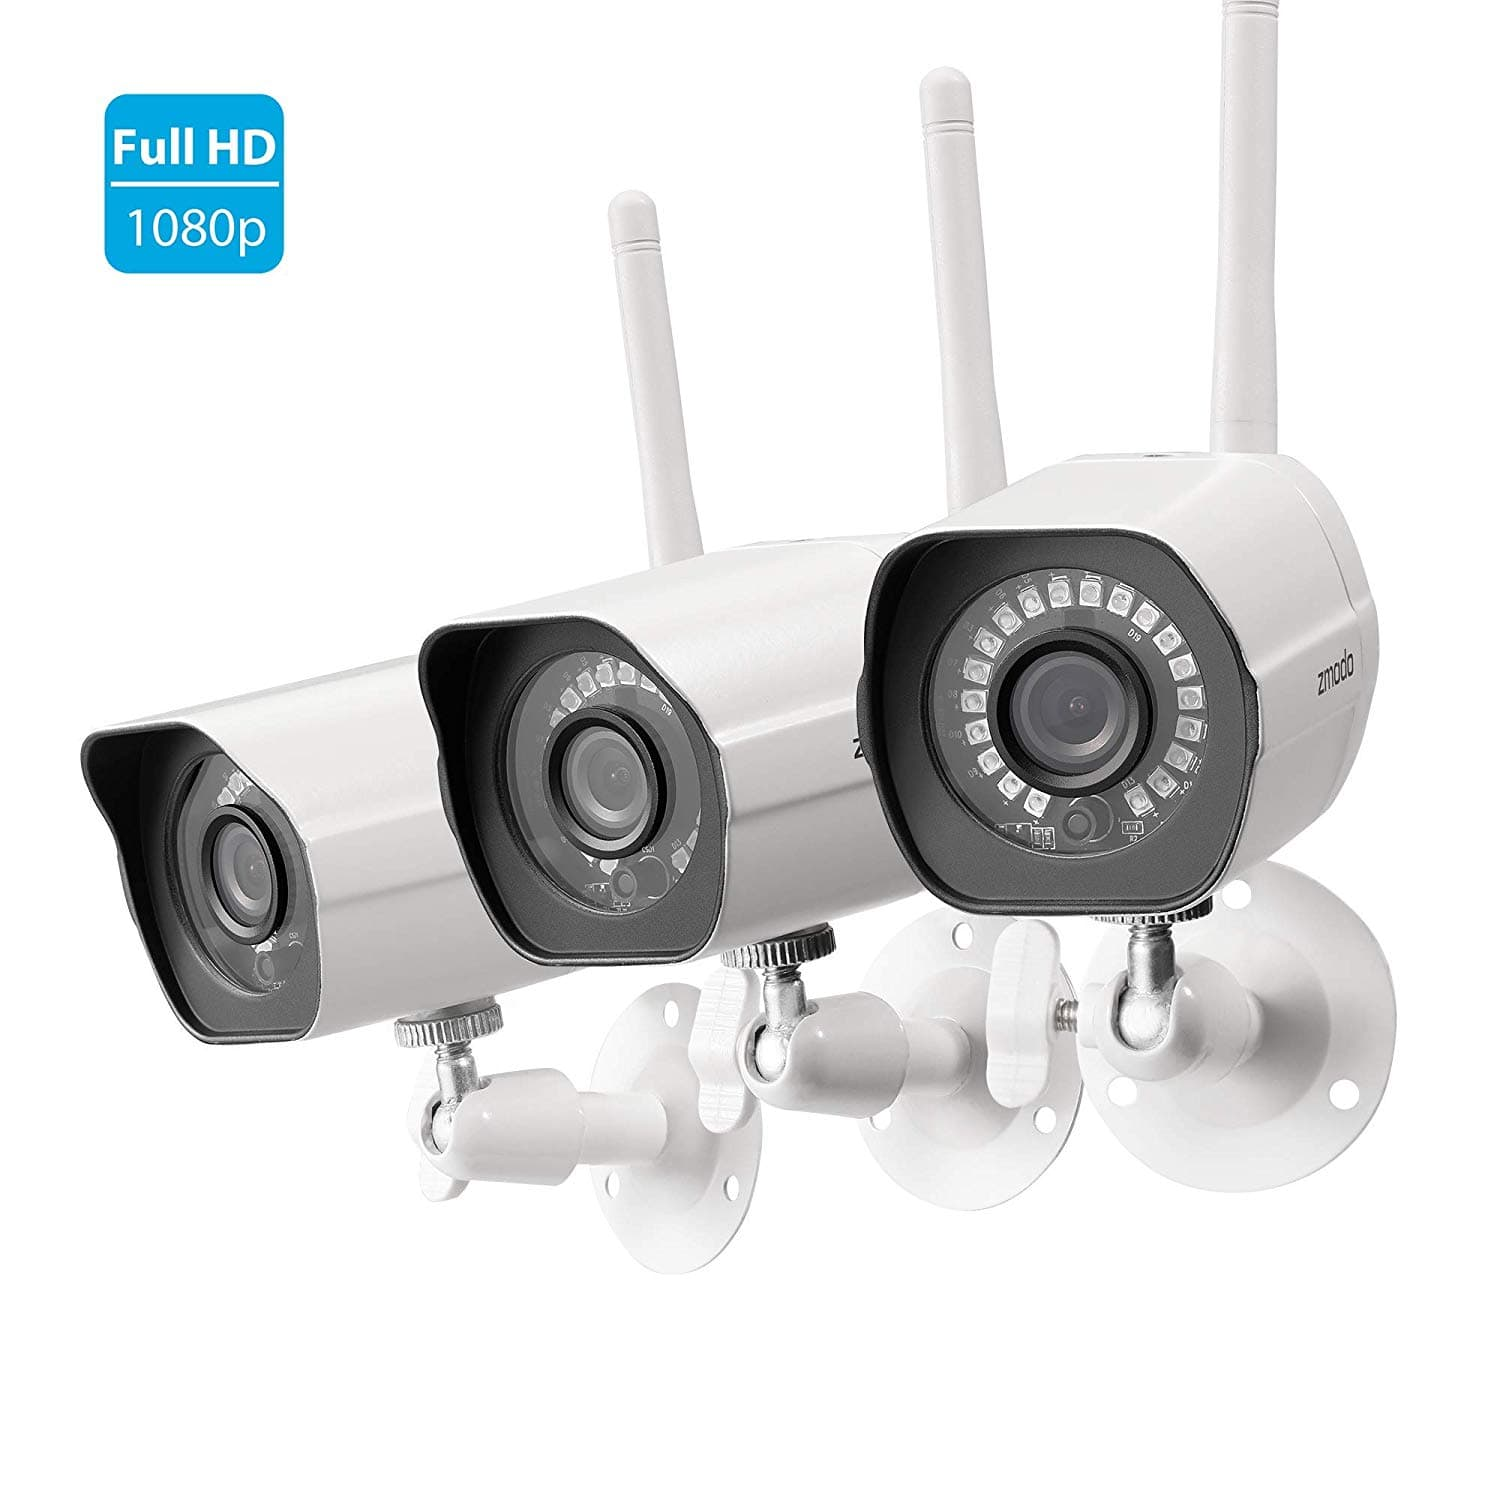 1080p HD Outdoor Wireless Security Camera System with 3 Bullet Cameras $103.99 + Free Shipping